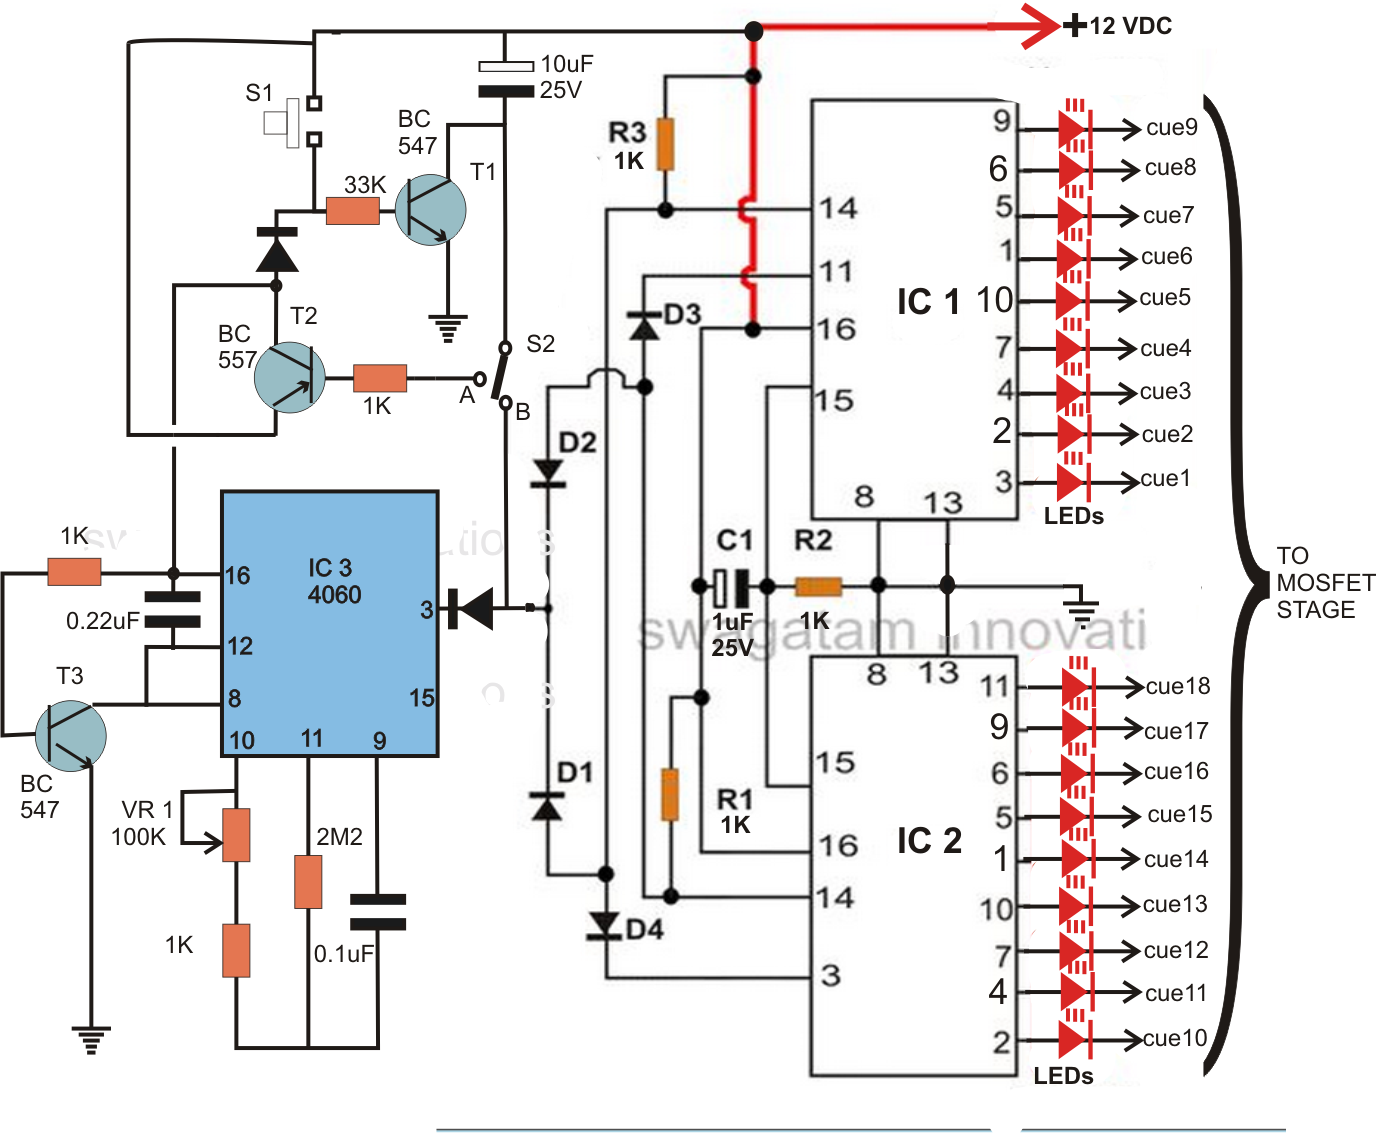 Faab5e2f6b12b75f243caa222d249b7d together with How To Build Pyro Ignition Circuit in addition Ceiling Fan Regulators Conventional Vs Electronic in addition 12 likewise Gsm Pump Motor Controller Circuit Using. on ac voltage regulator circuit diagram